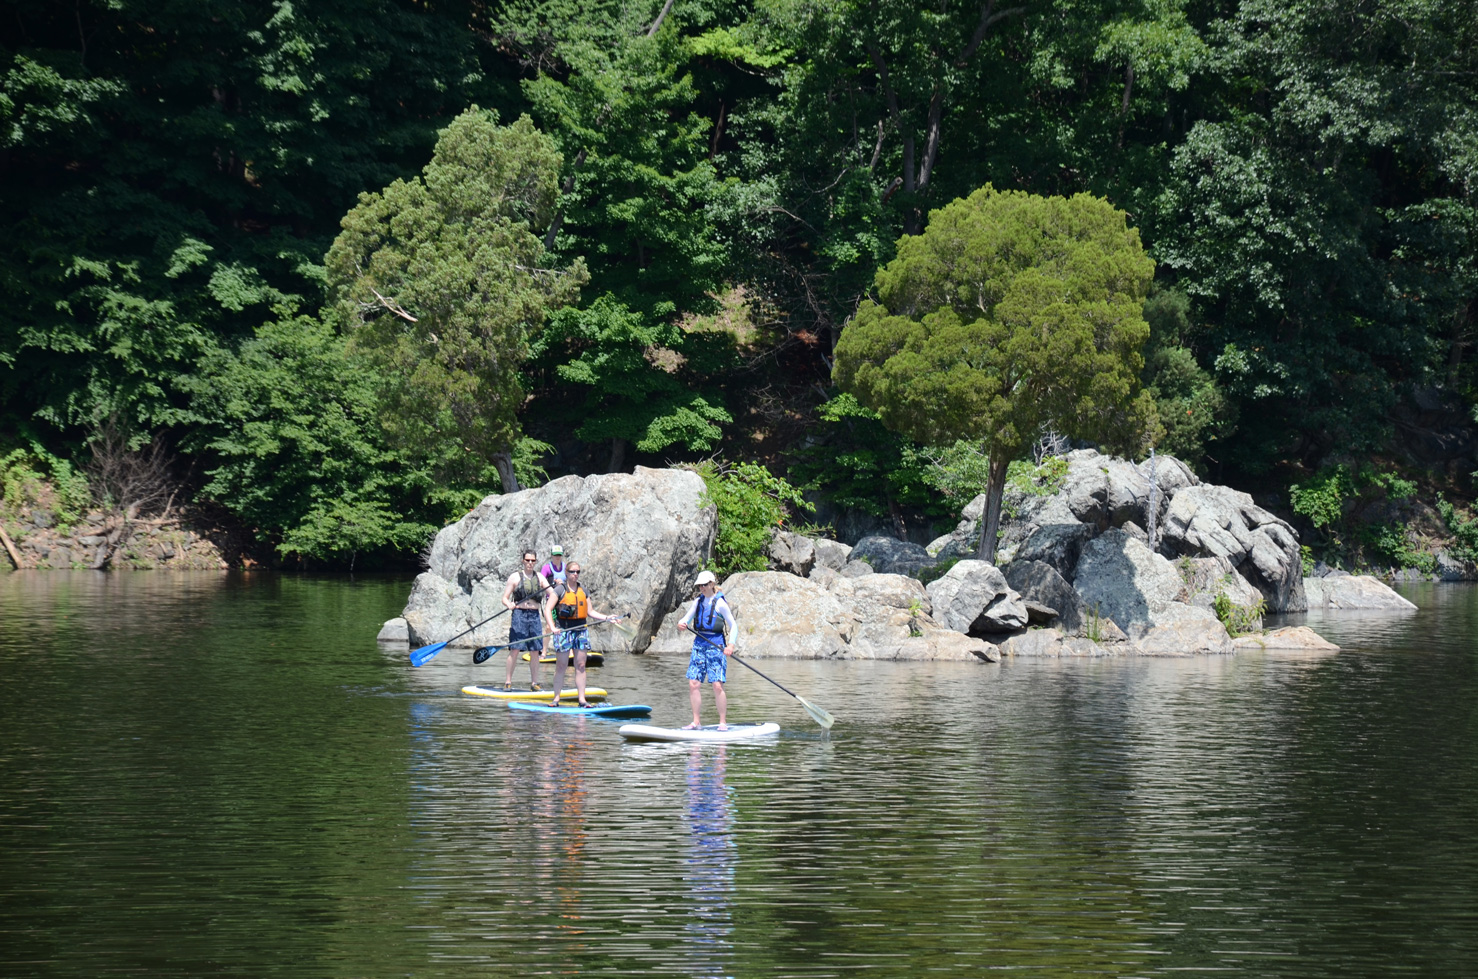 SUP Kurs Titisee Stand up paddle kurs Titisee Schwarzwald Freiburg